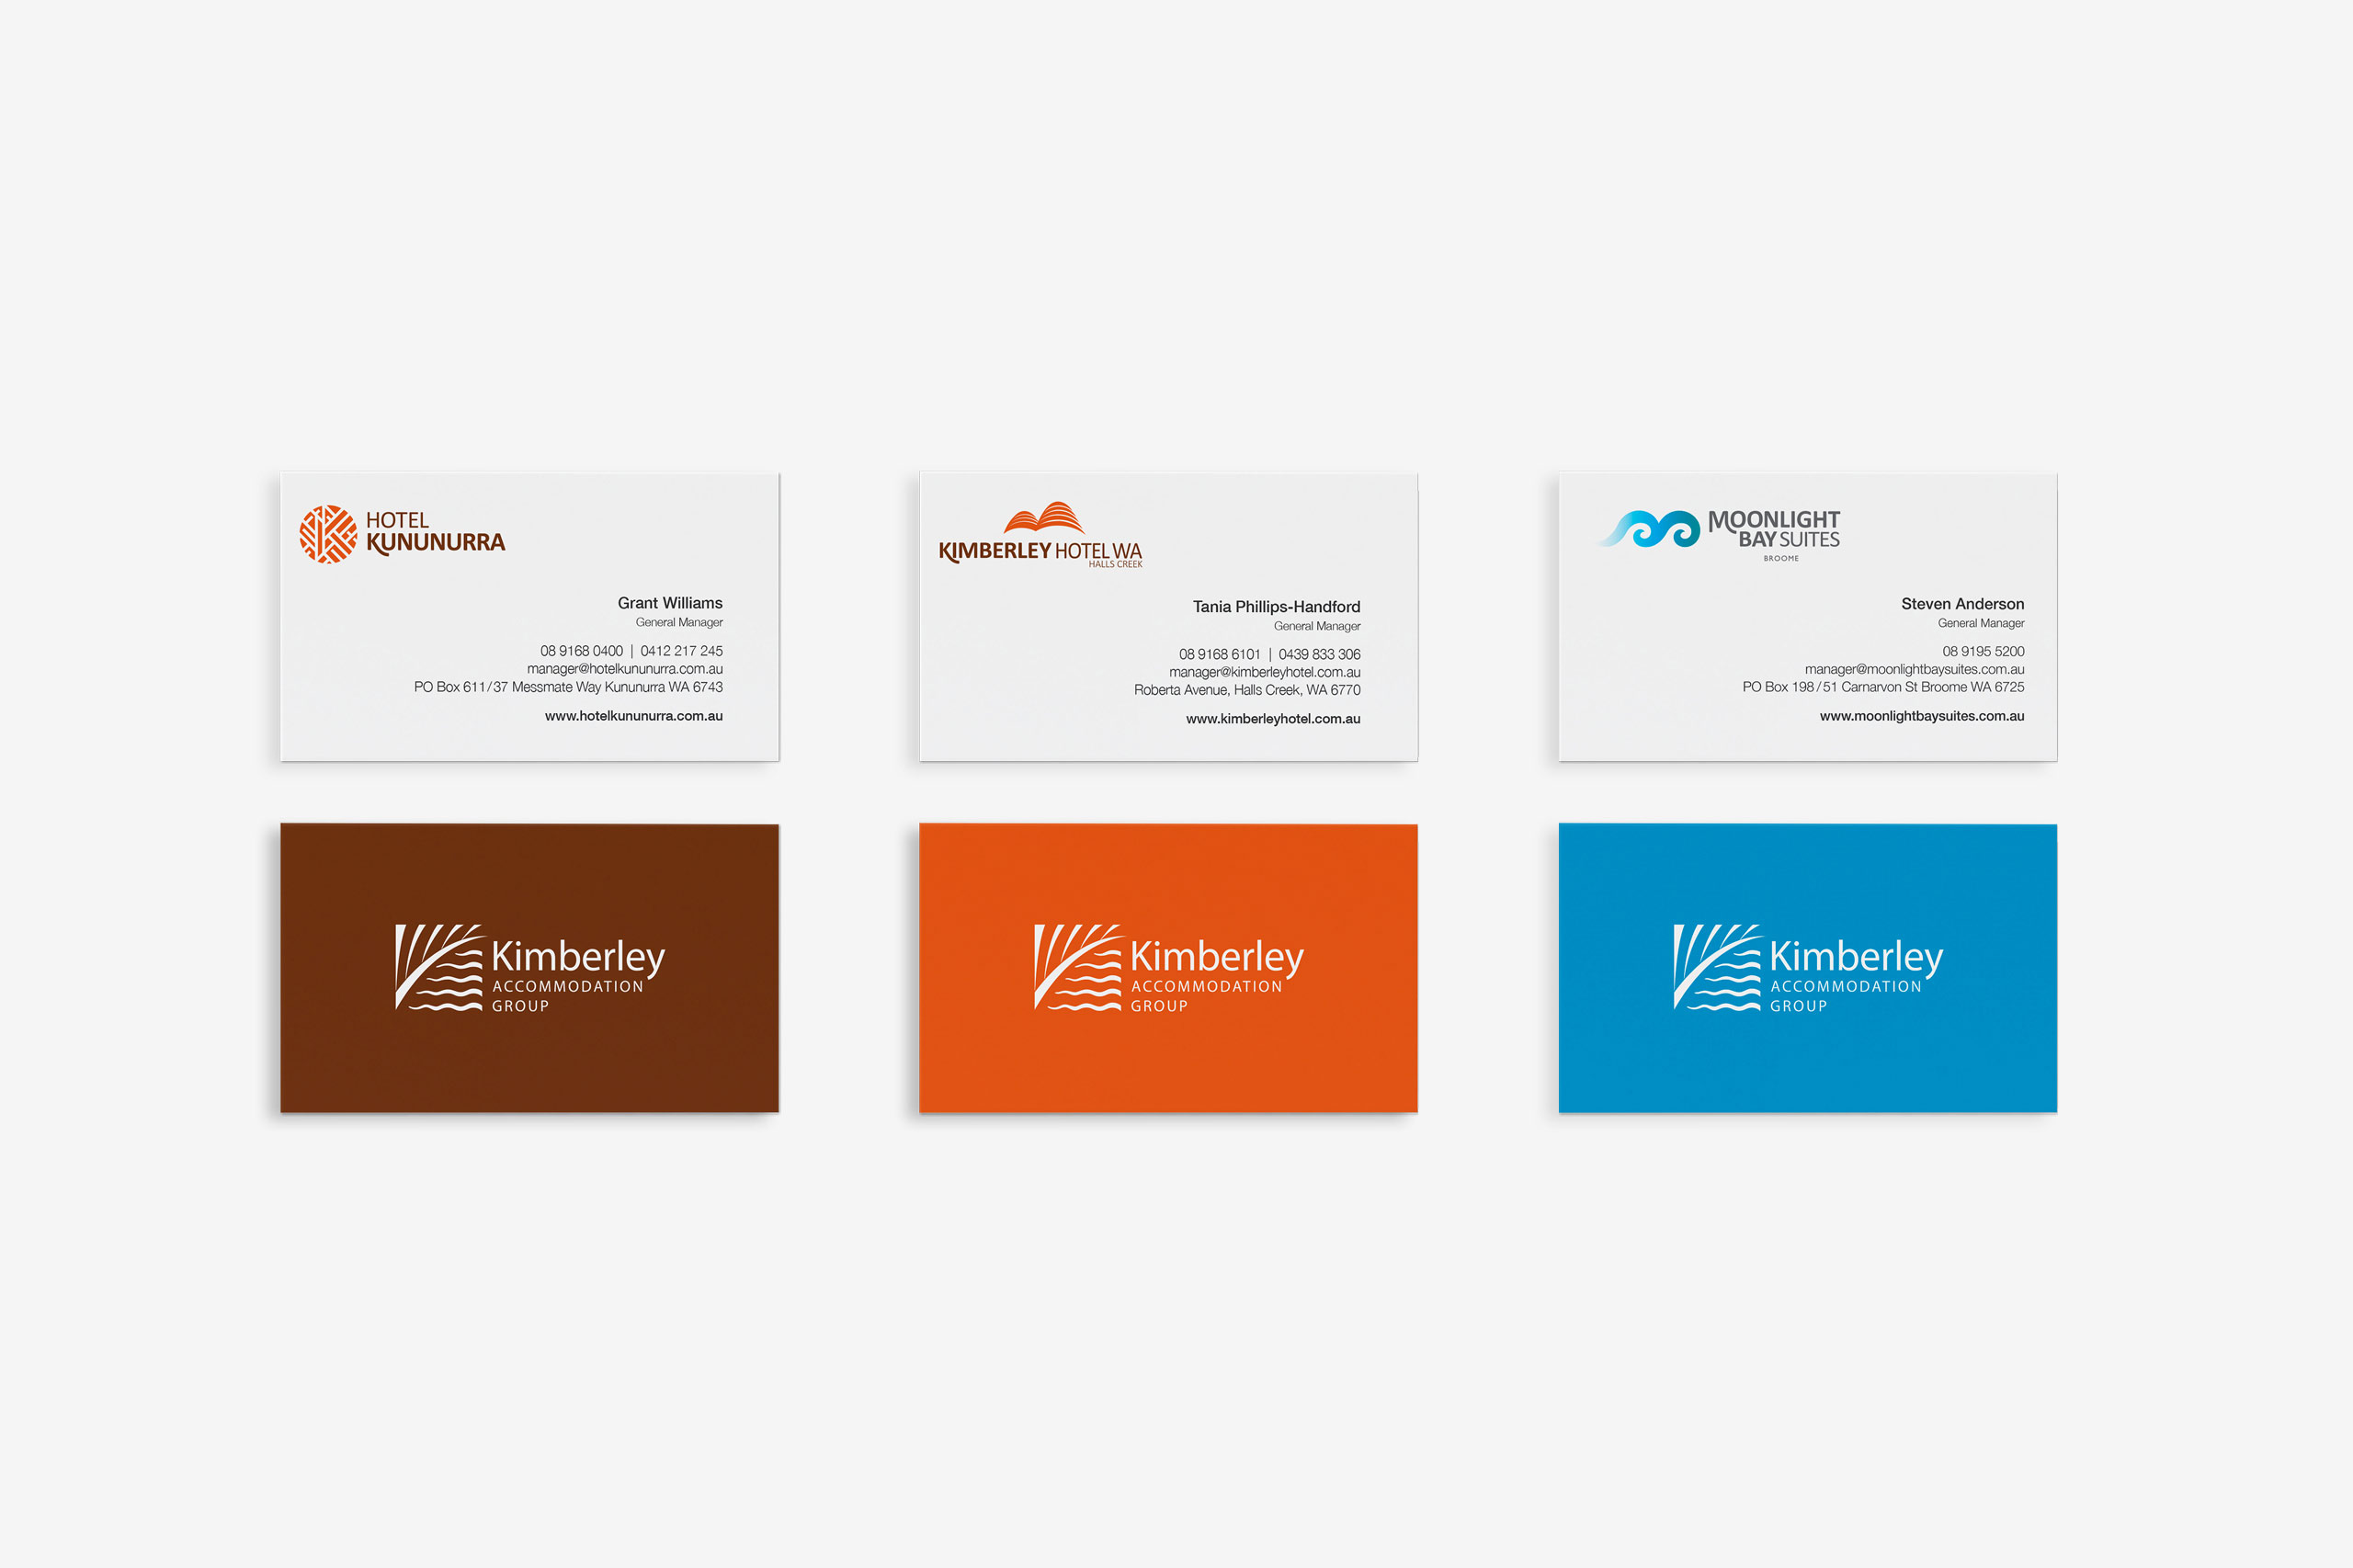 kimberley accommodation group business cards maker and co design